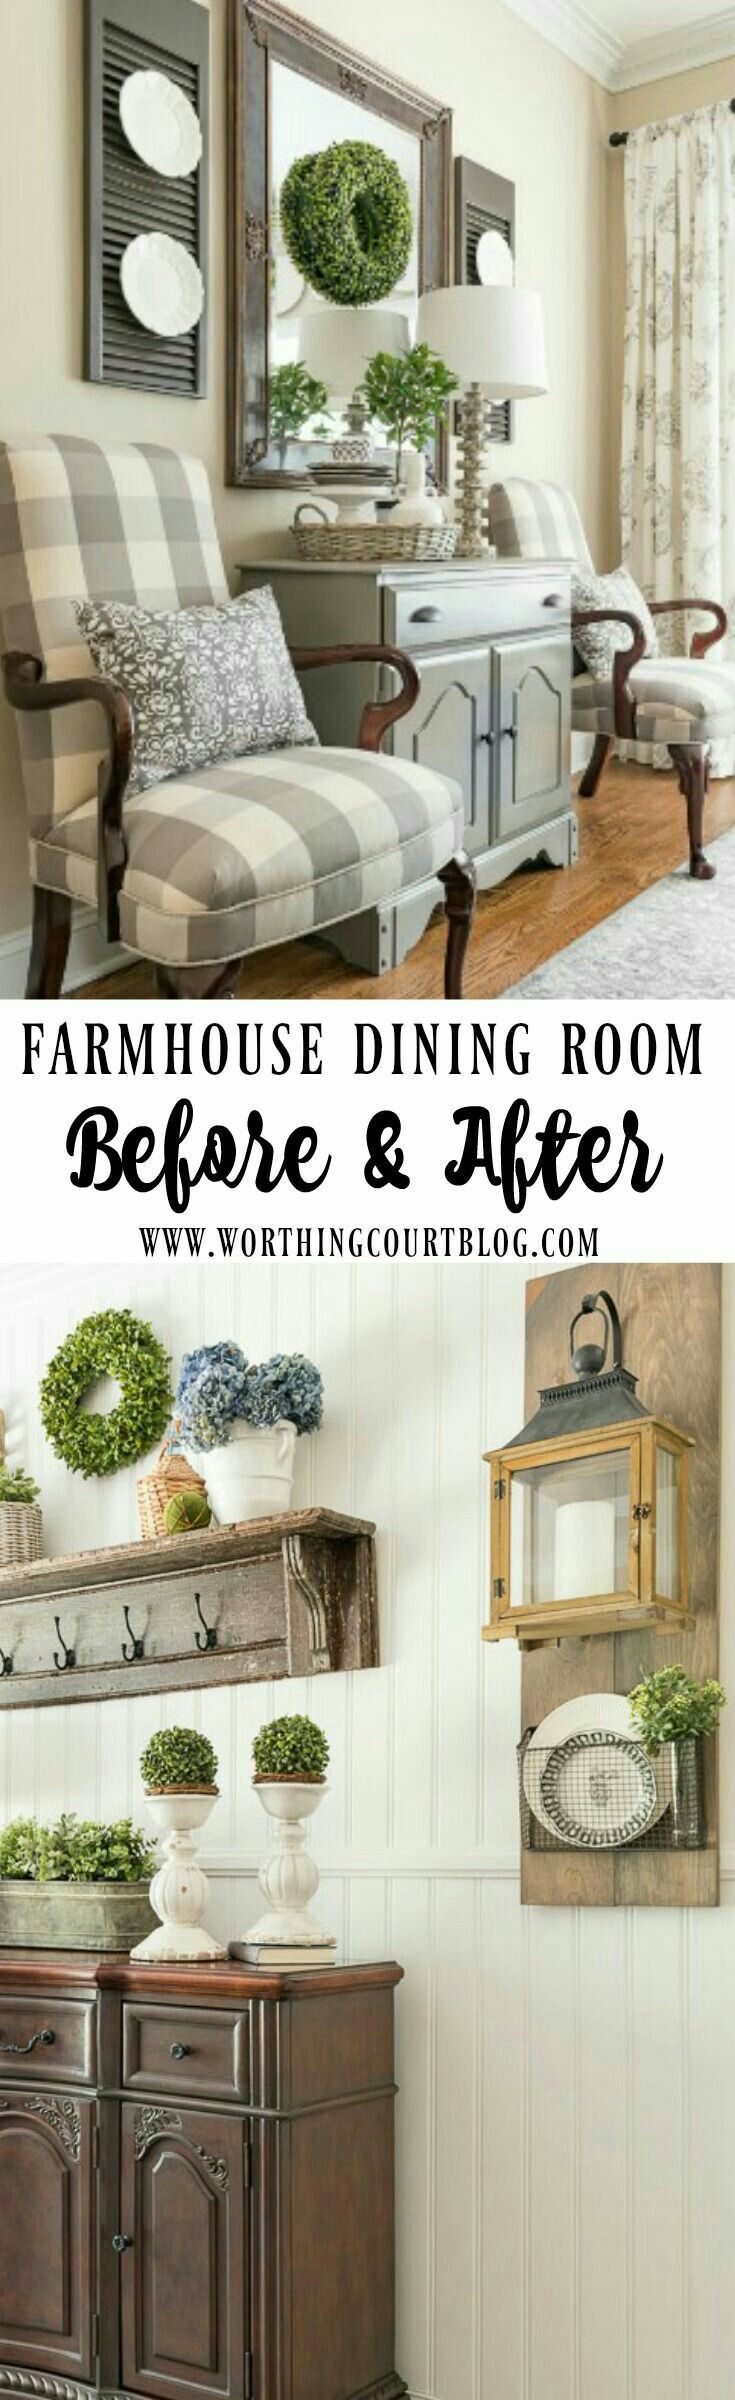 best 12 dining images on pinterest | other